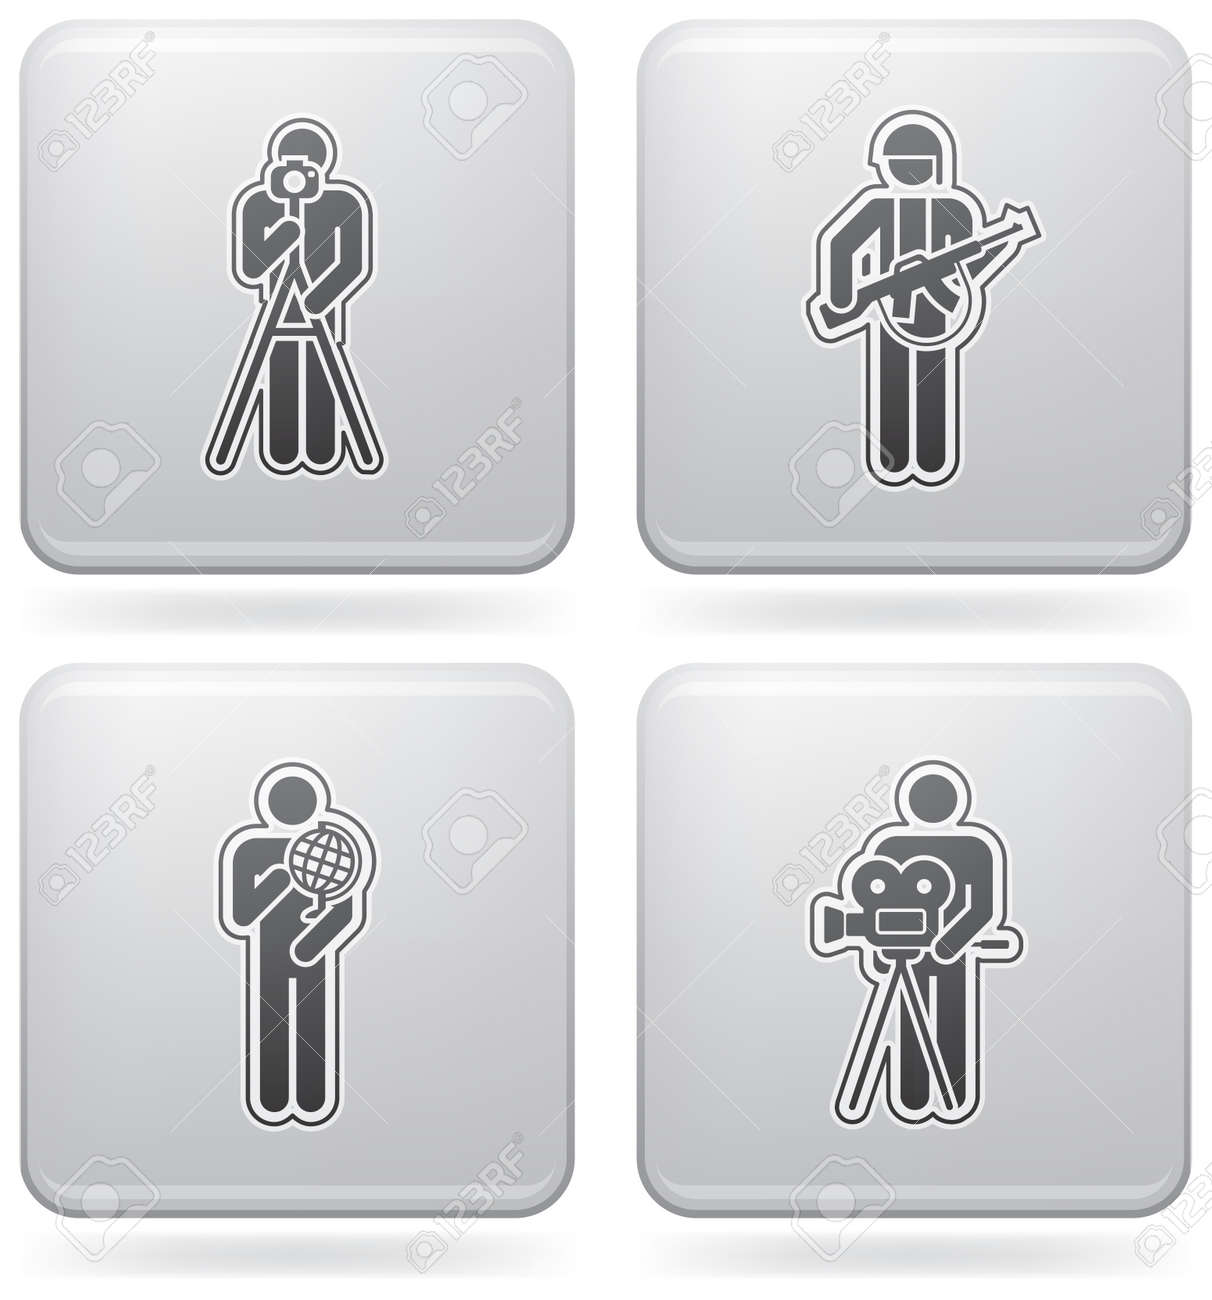 Mans Occupation Set Stock Vector - 7481350